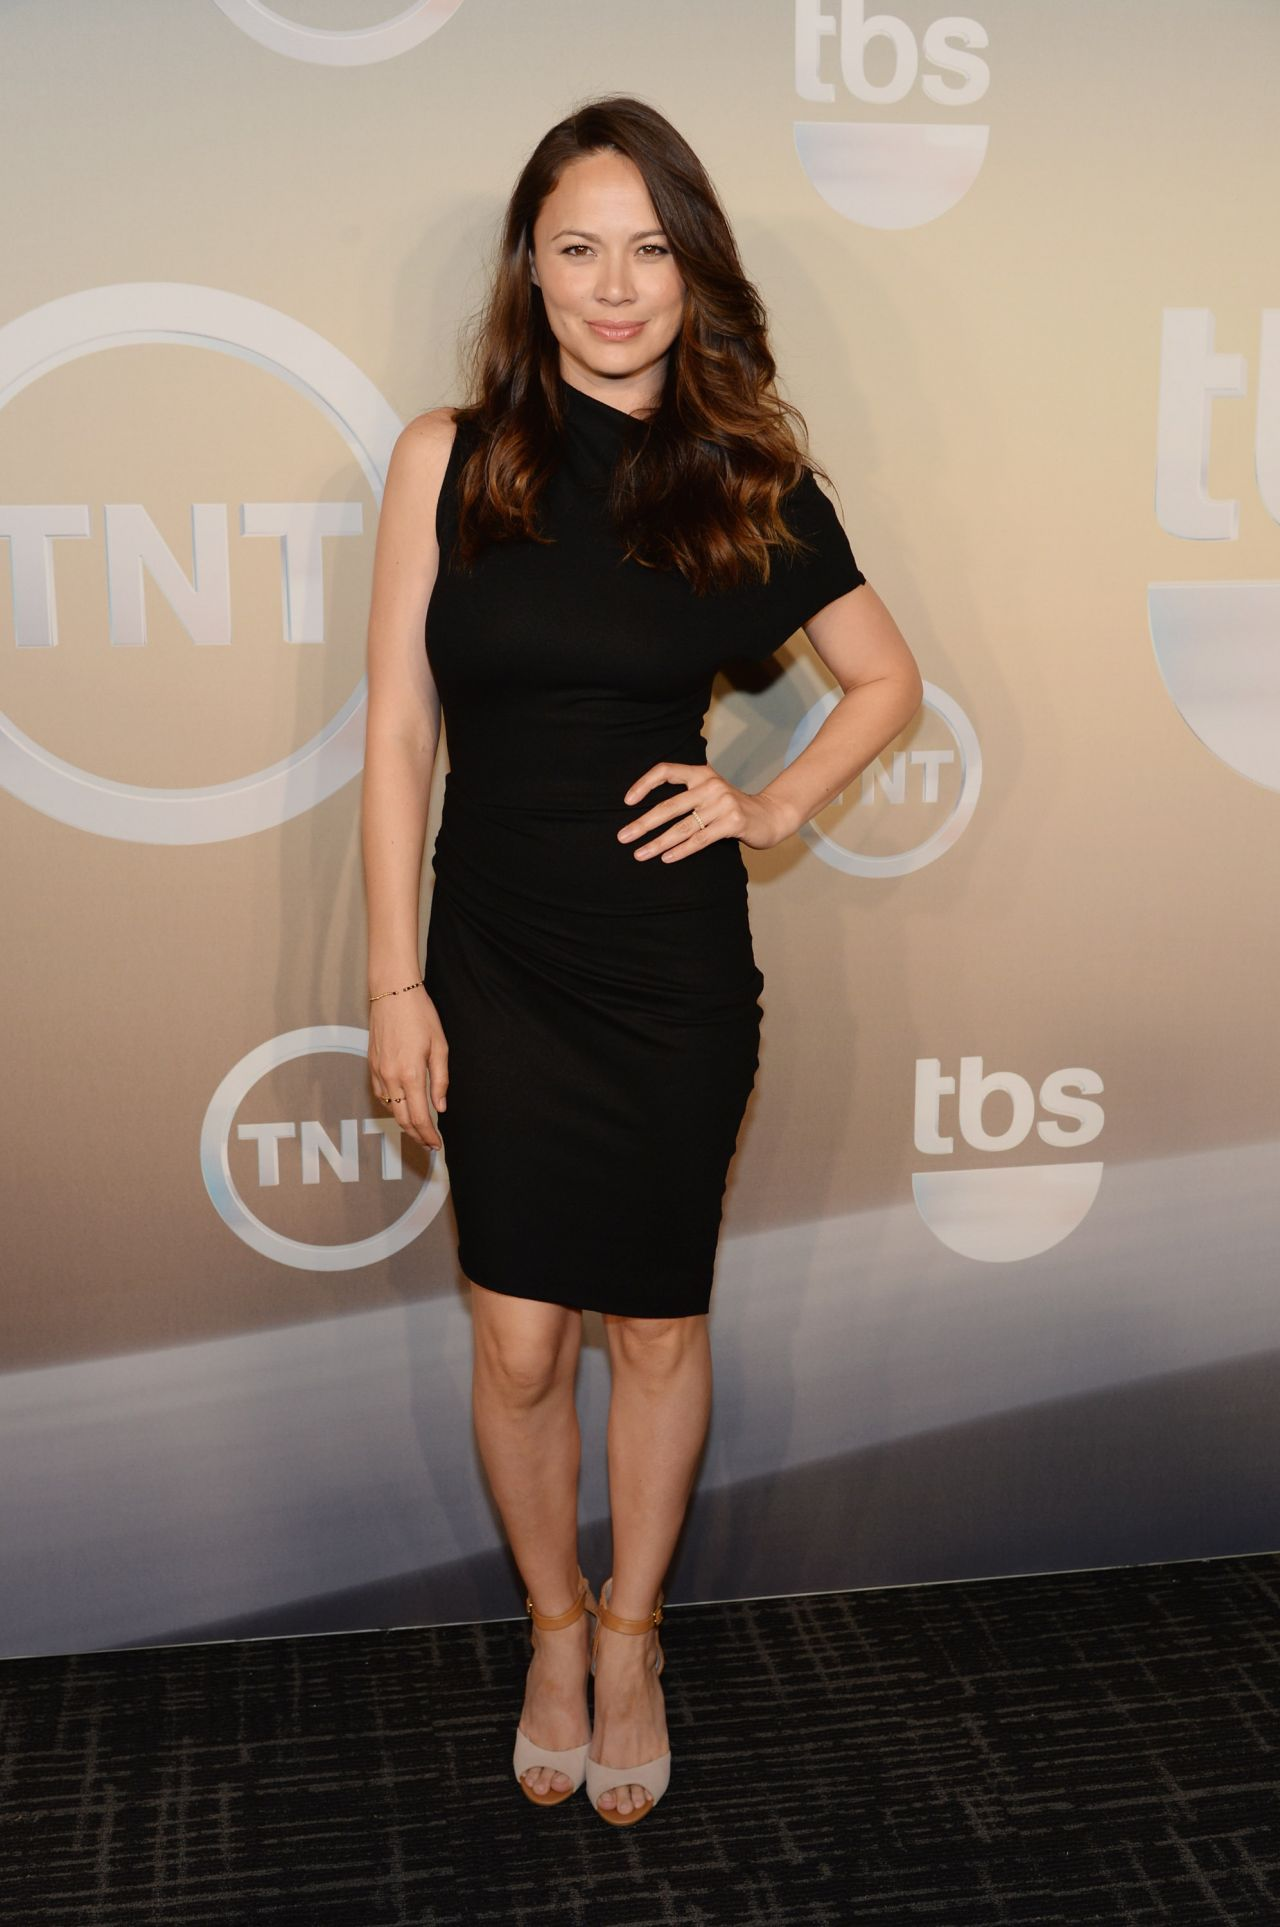 Moon Bloodgood - TBS / TNT Upfront 2014